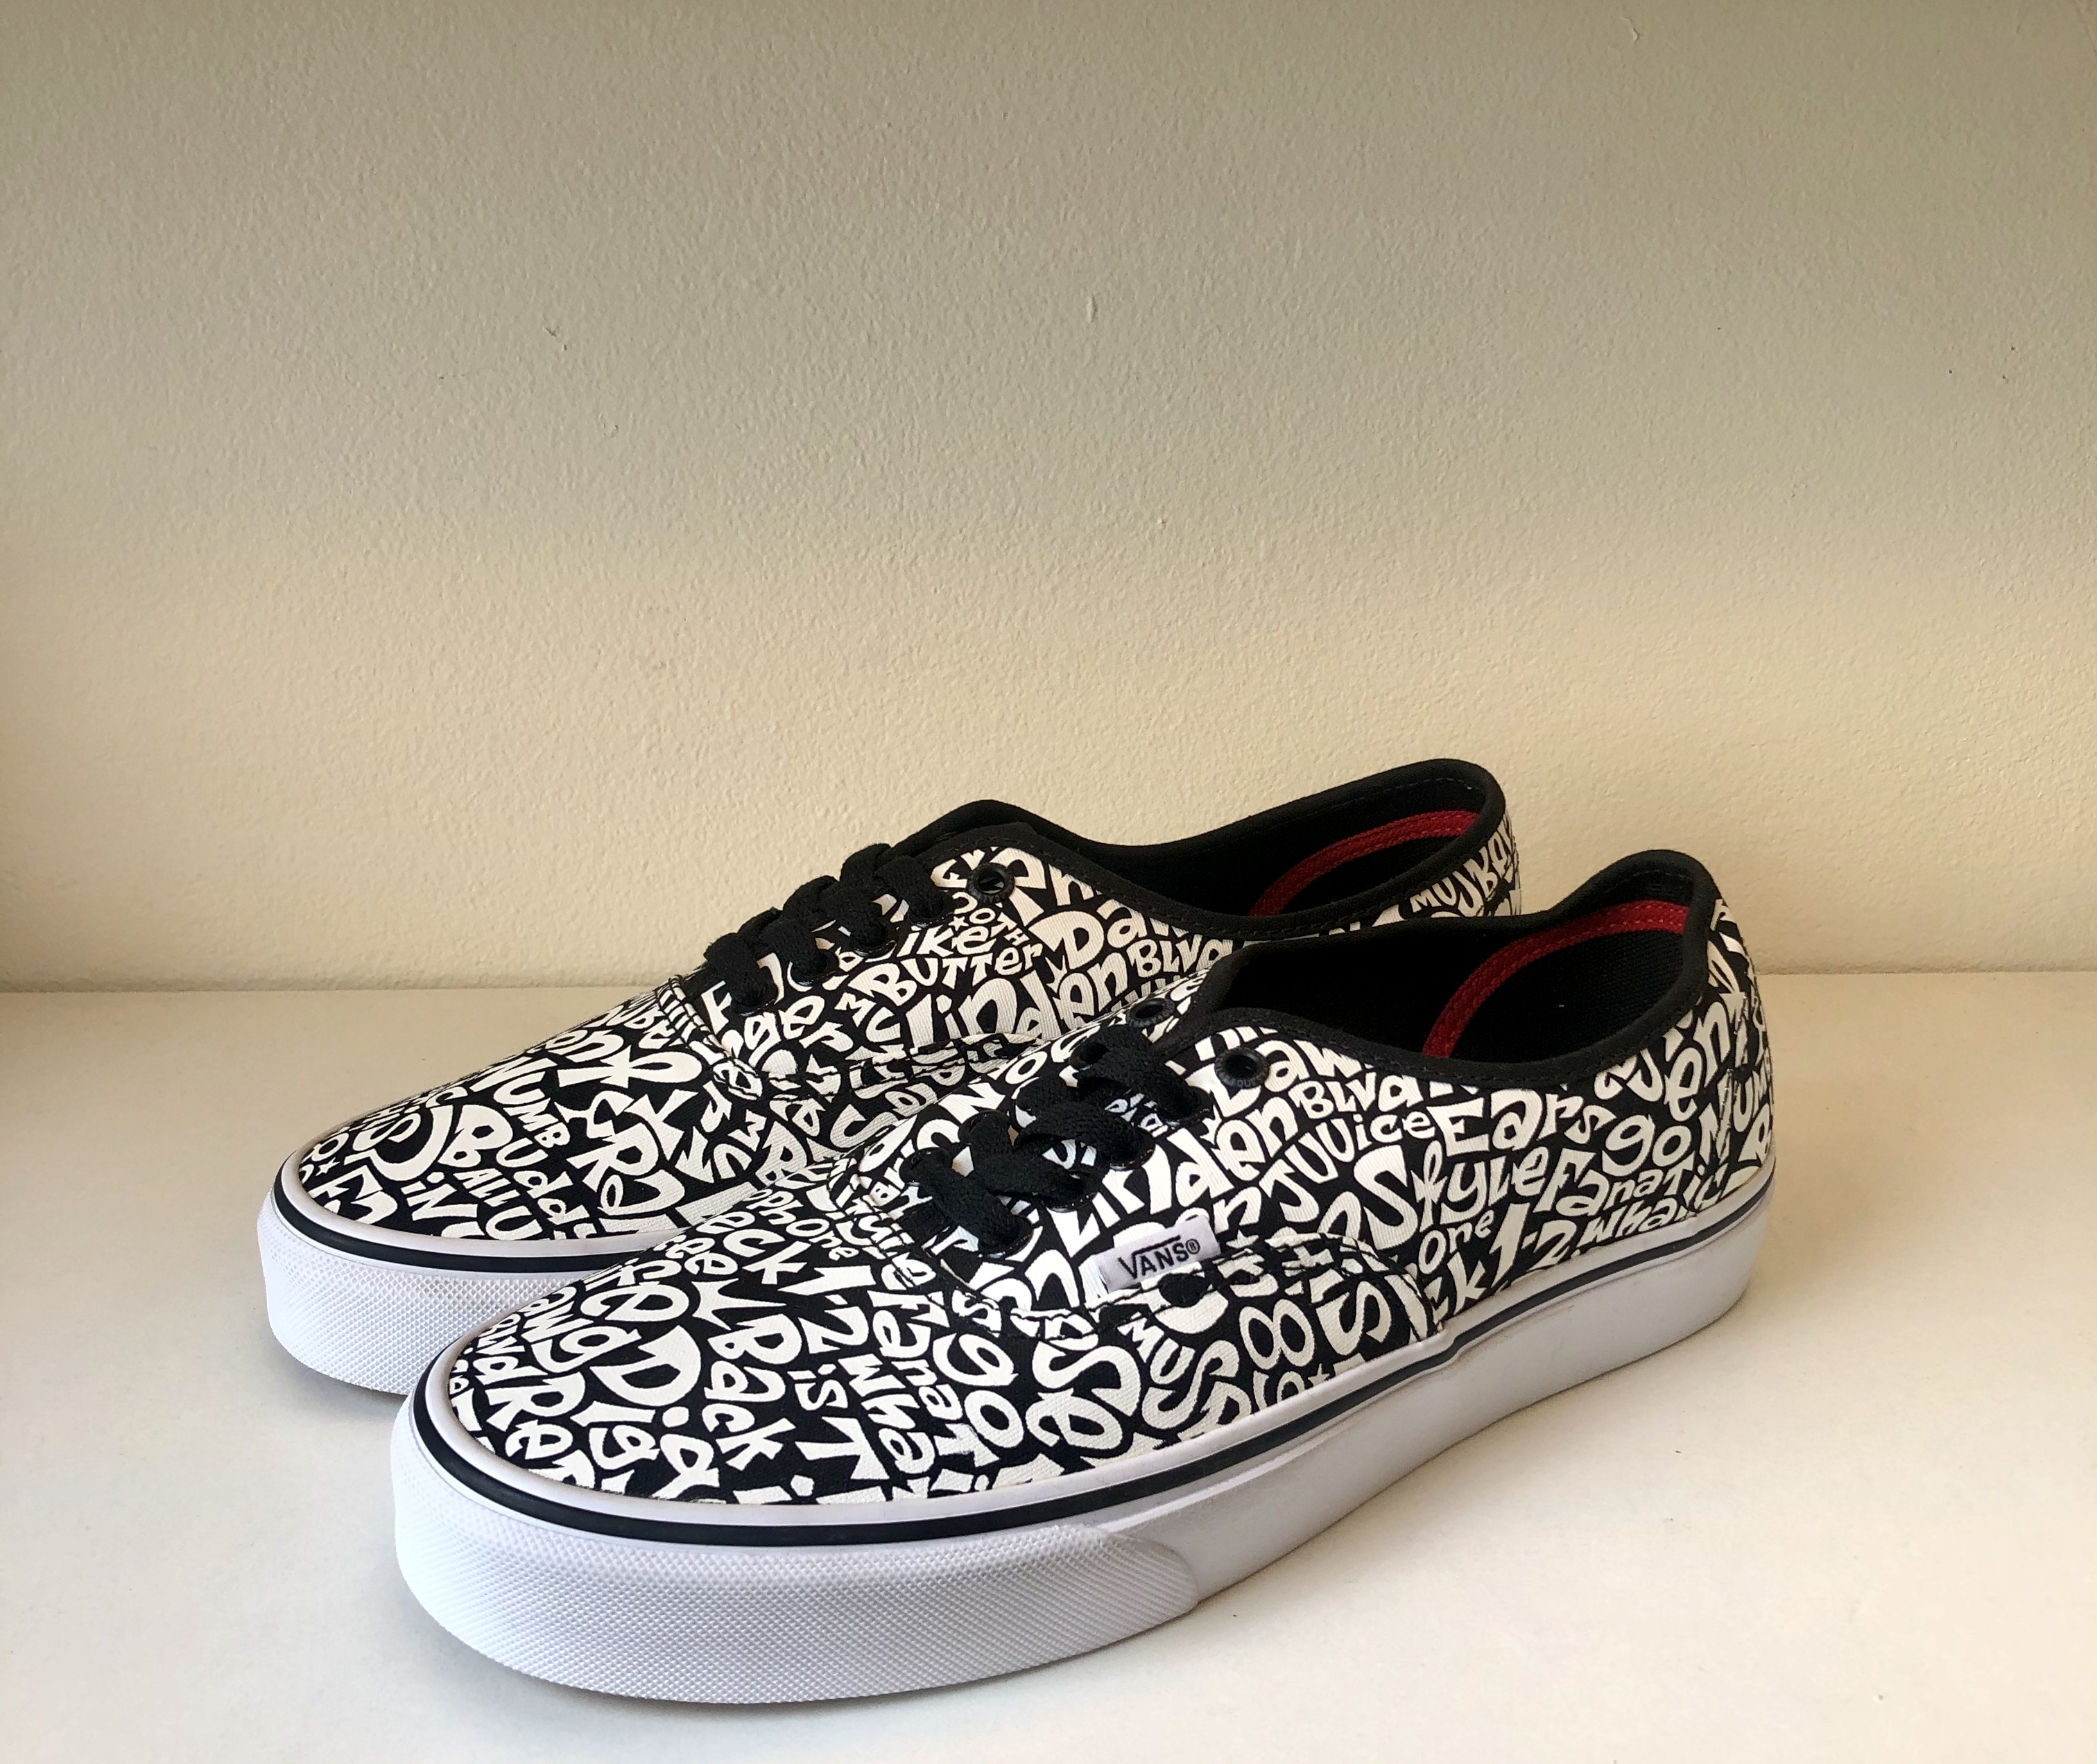 Vans Authentic A Tribe Called Quest